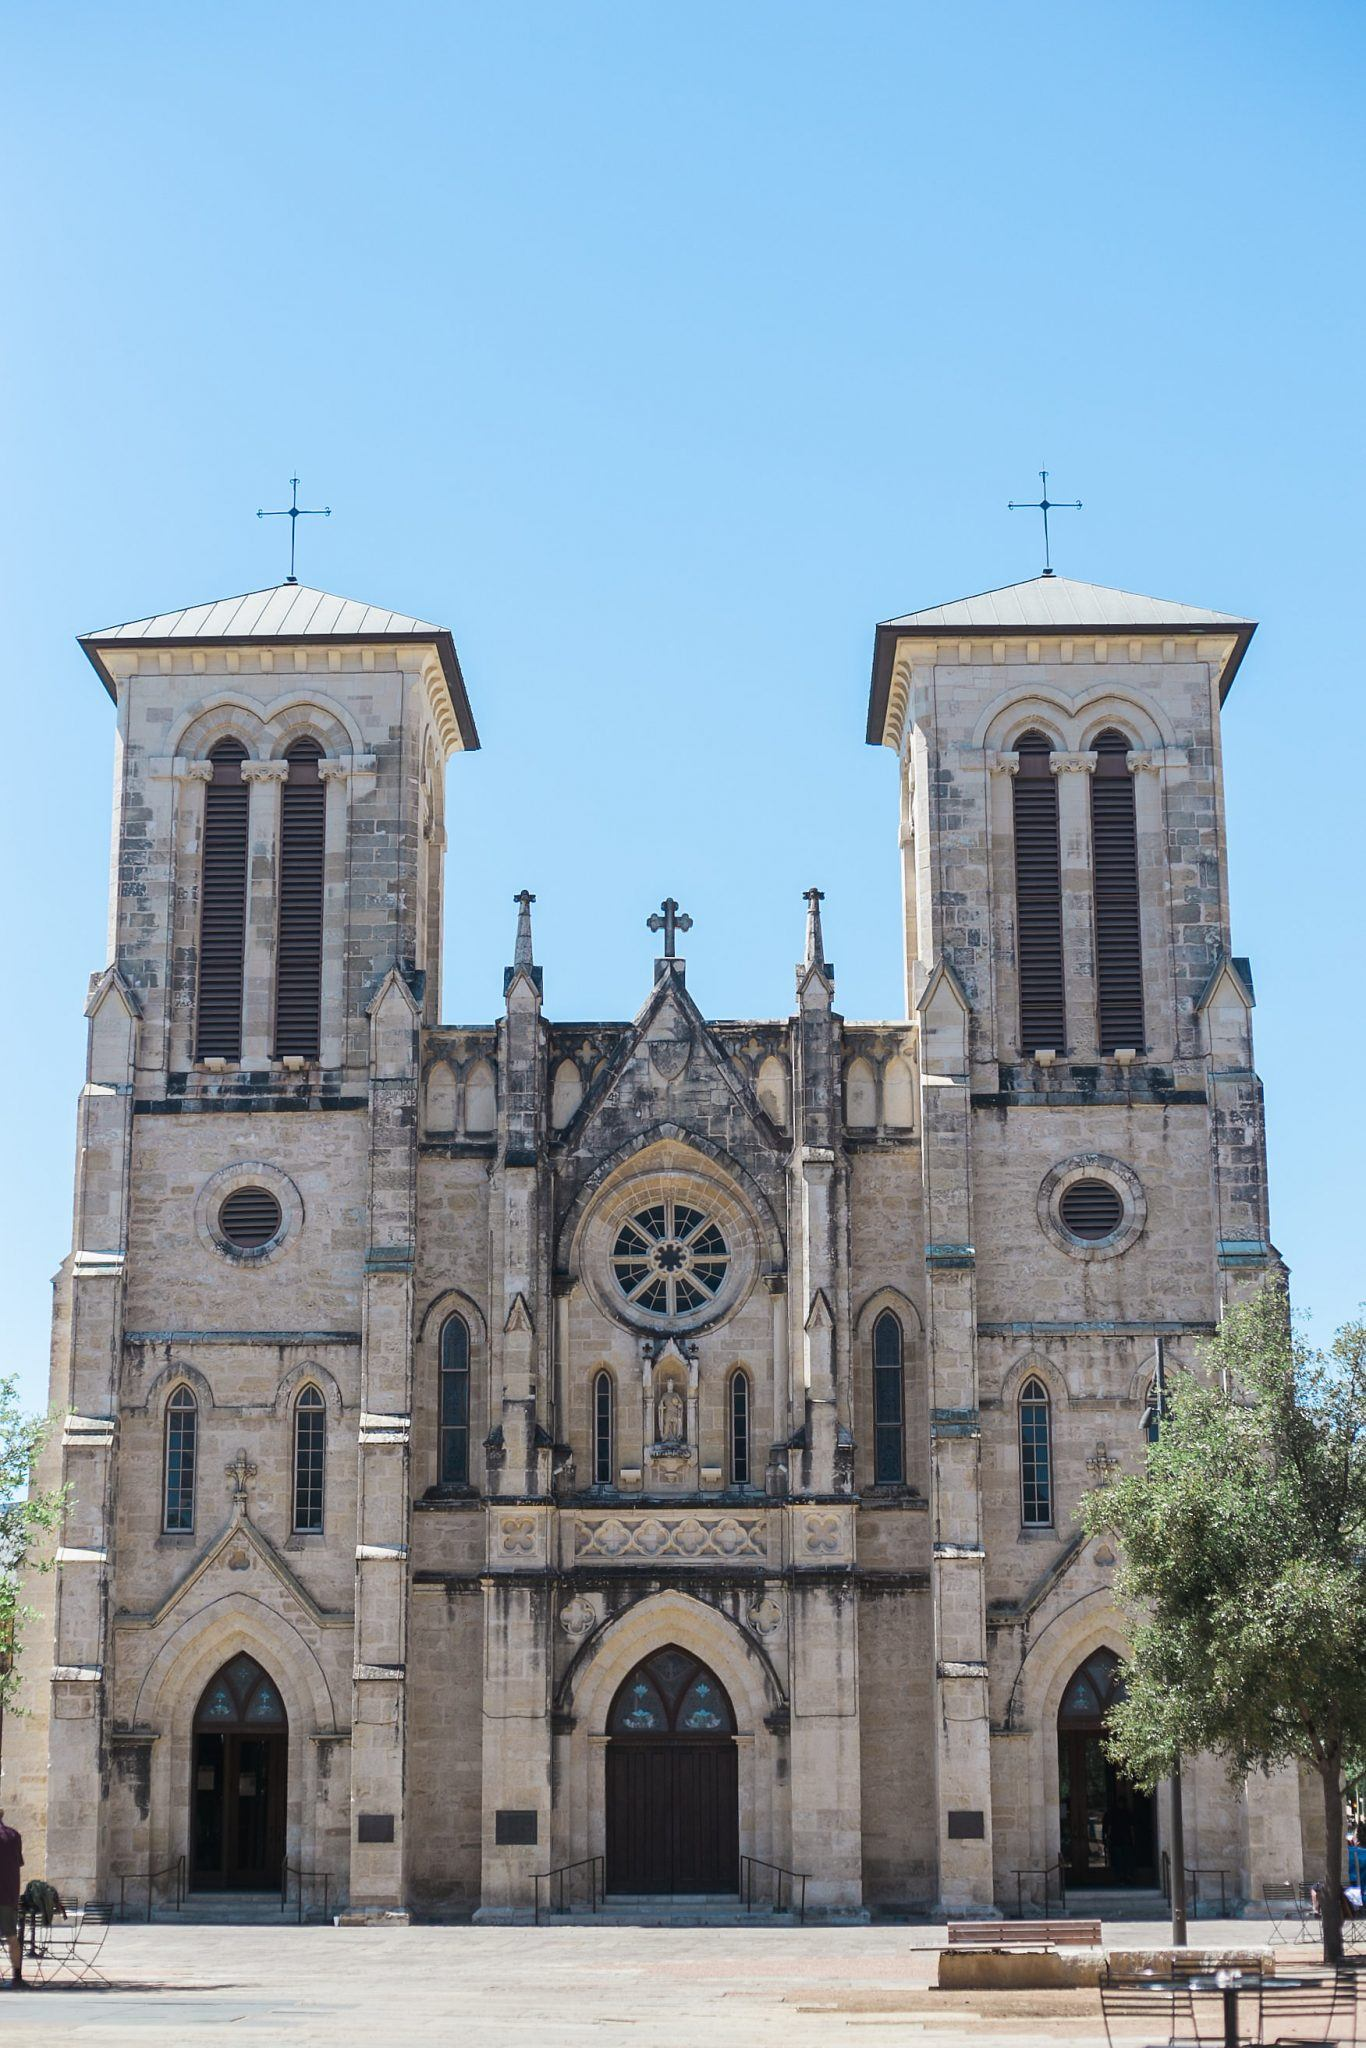 Oldest church in texas is in San Antonio